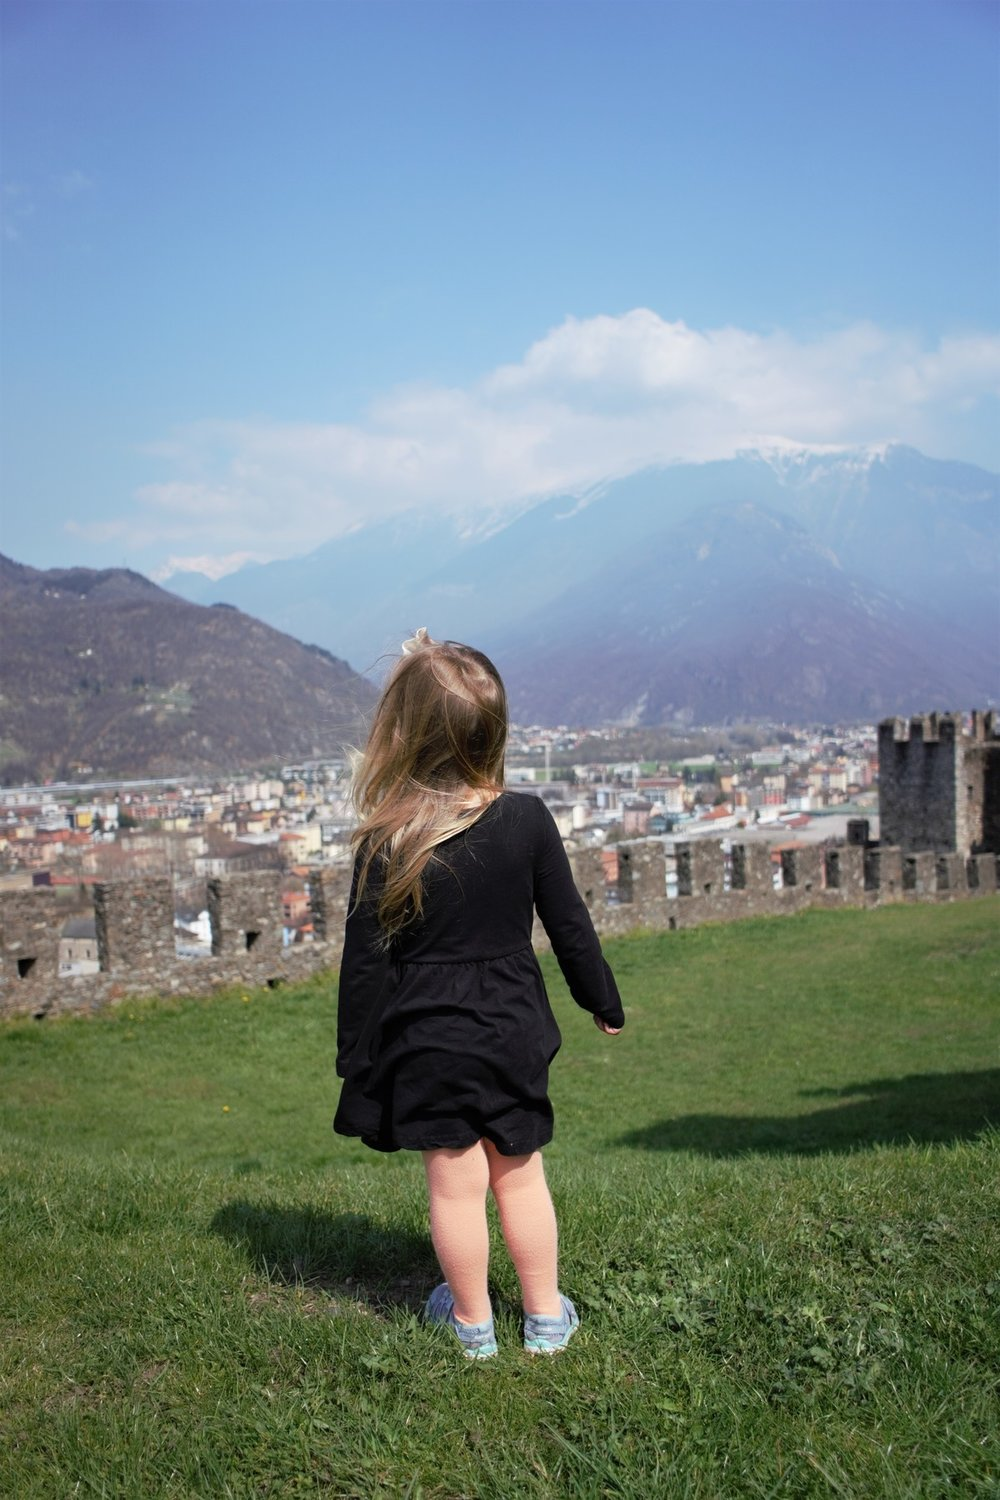 bellinzona, switzerland. We saw 7 Swiss cities and Vaduz with our Swiss Rail Pass.  We paid one price and rode as many times as we needed over the 8 days!